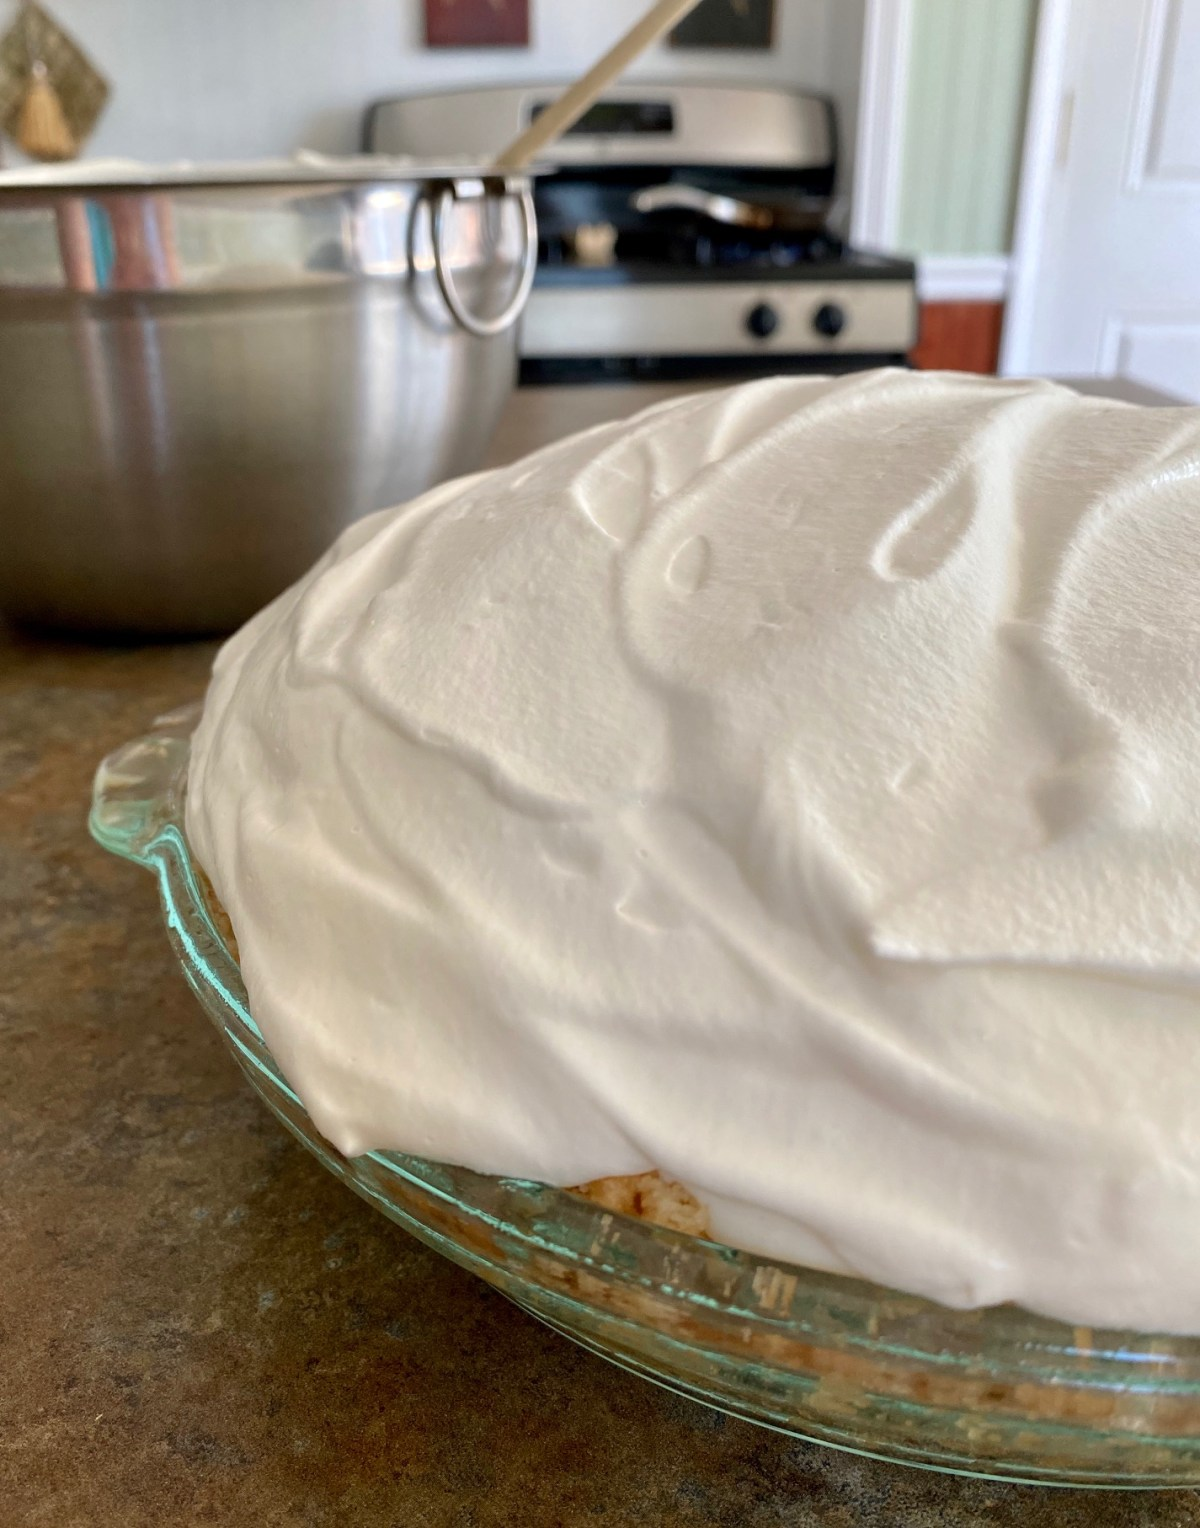 Whipped cream is spooned over the cream pie filling. #keylimepie #keylimecreampie #summerdessert #summerrecipes #nobakepie #nobakedessert